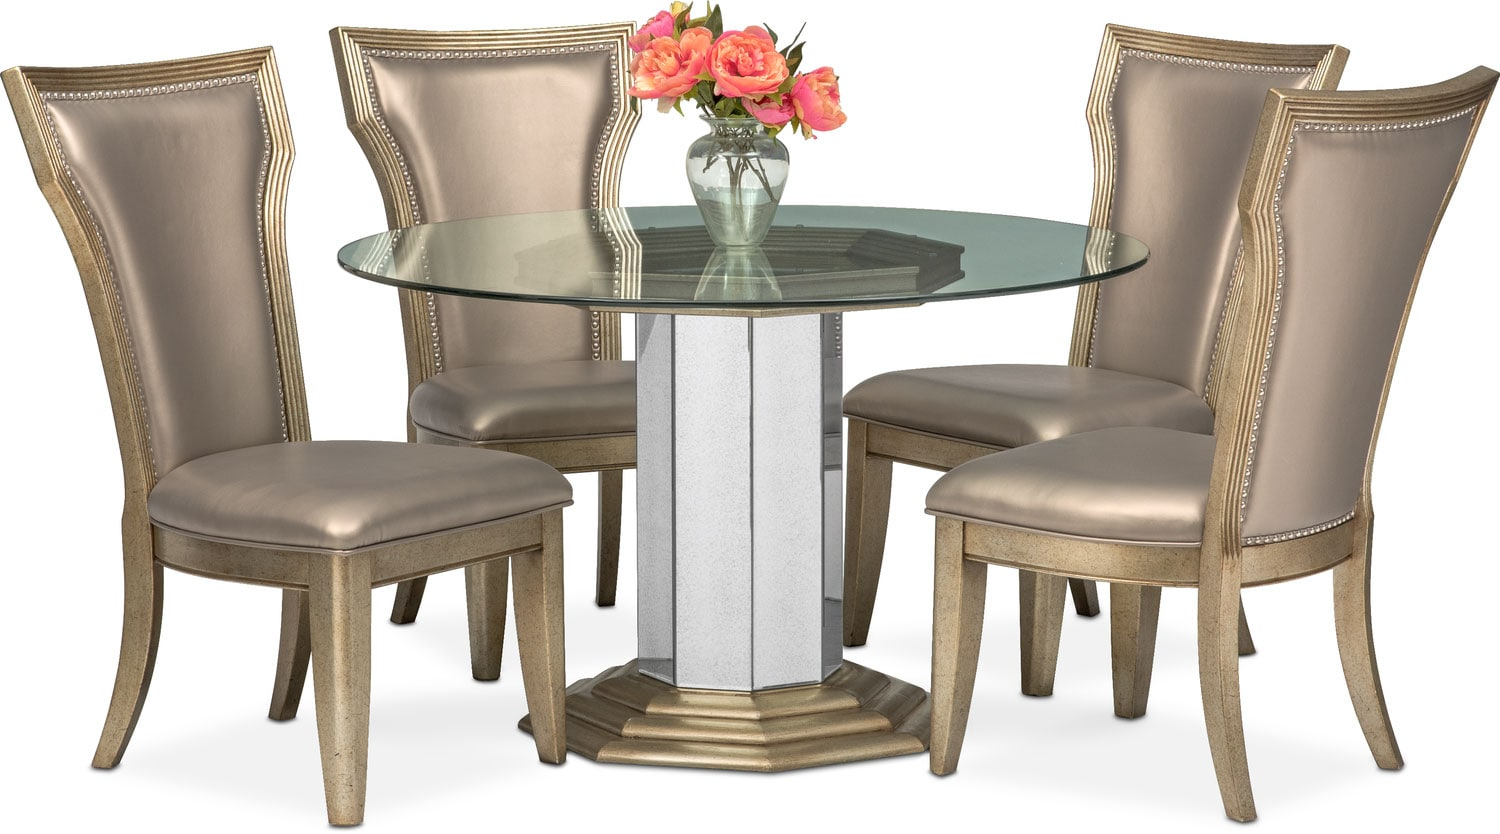 Elegant Angelina Round Table And 4 Side Chairs   Metallic Part 21